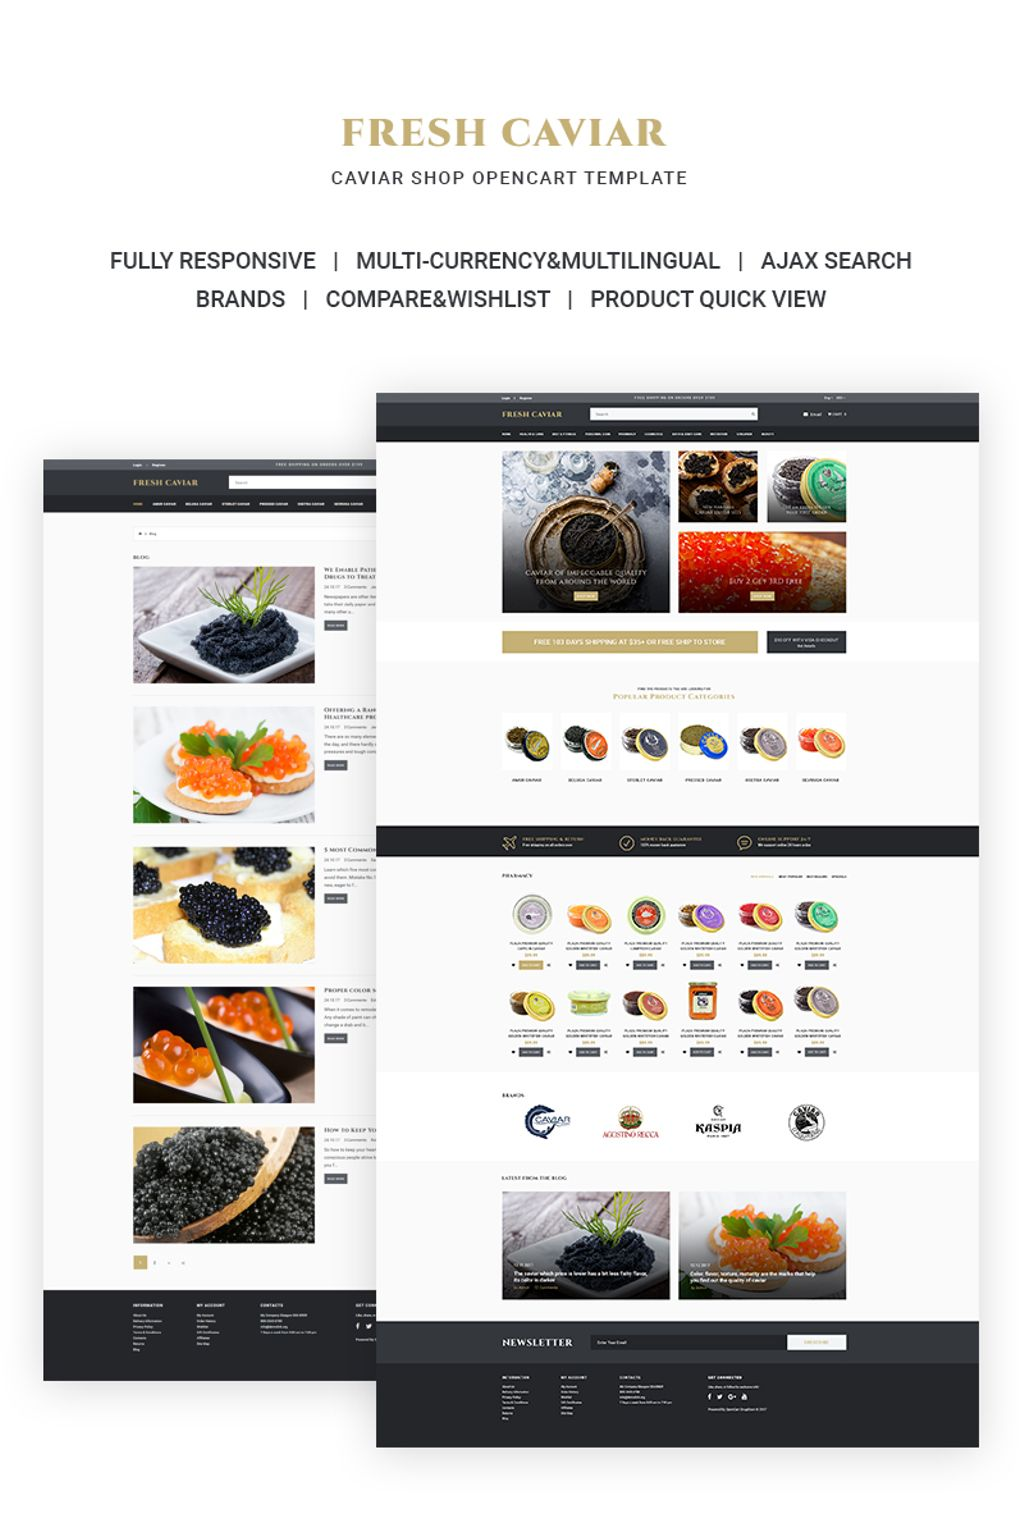 Fresh Caviar - Caviar Shop OpenCart Template